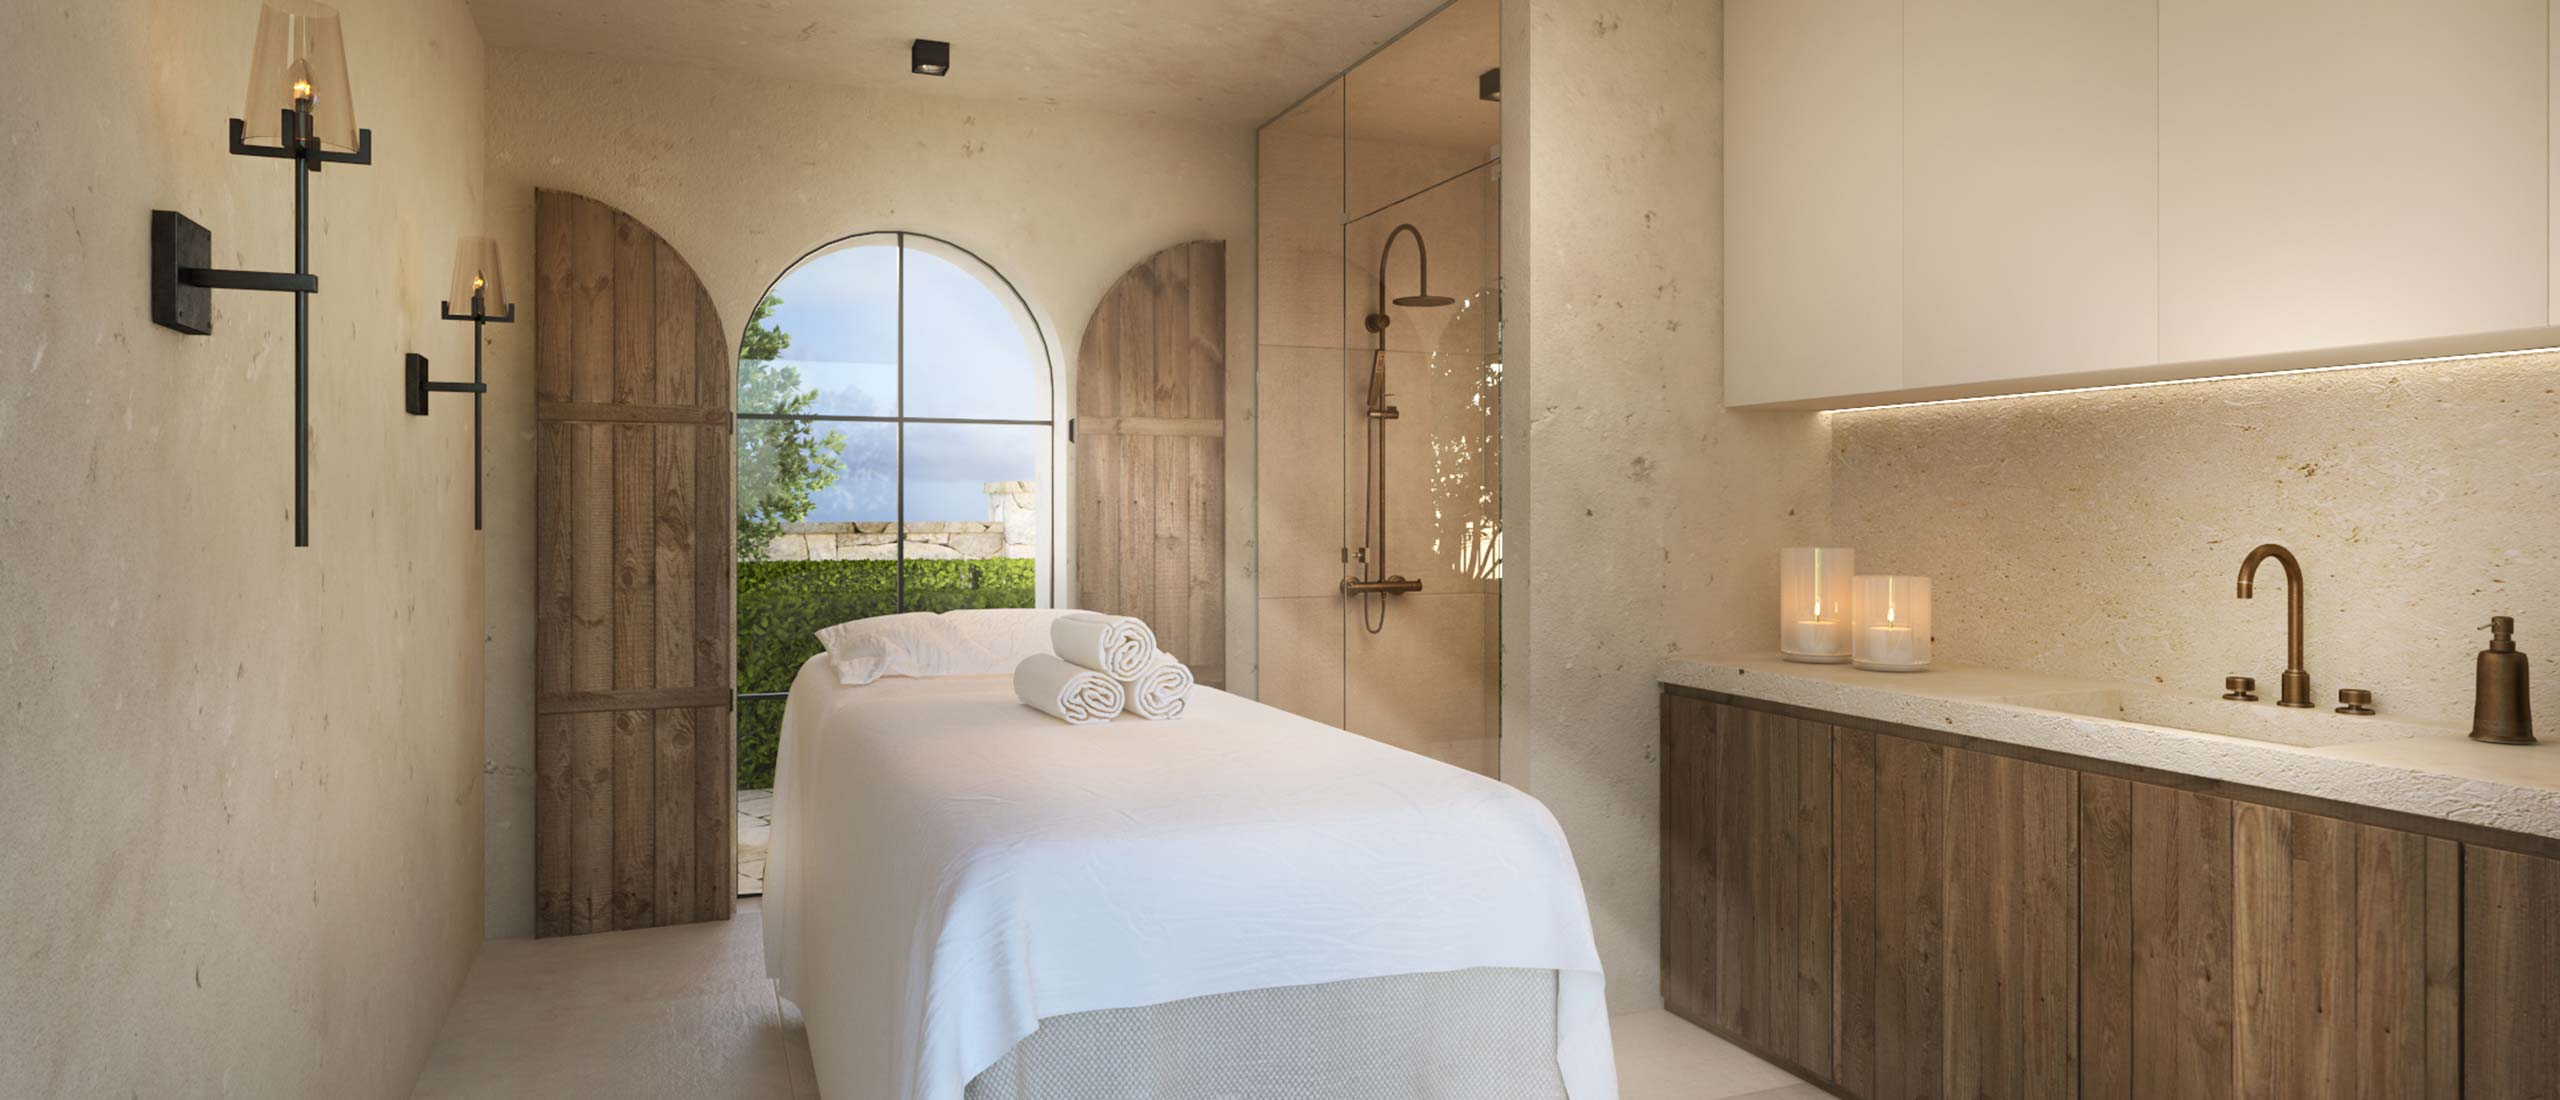 Spa Botanic Sanctuary Antwerp 5-star superior Leading Hotels of the World